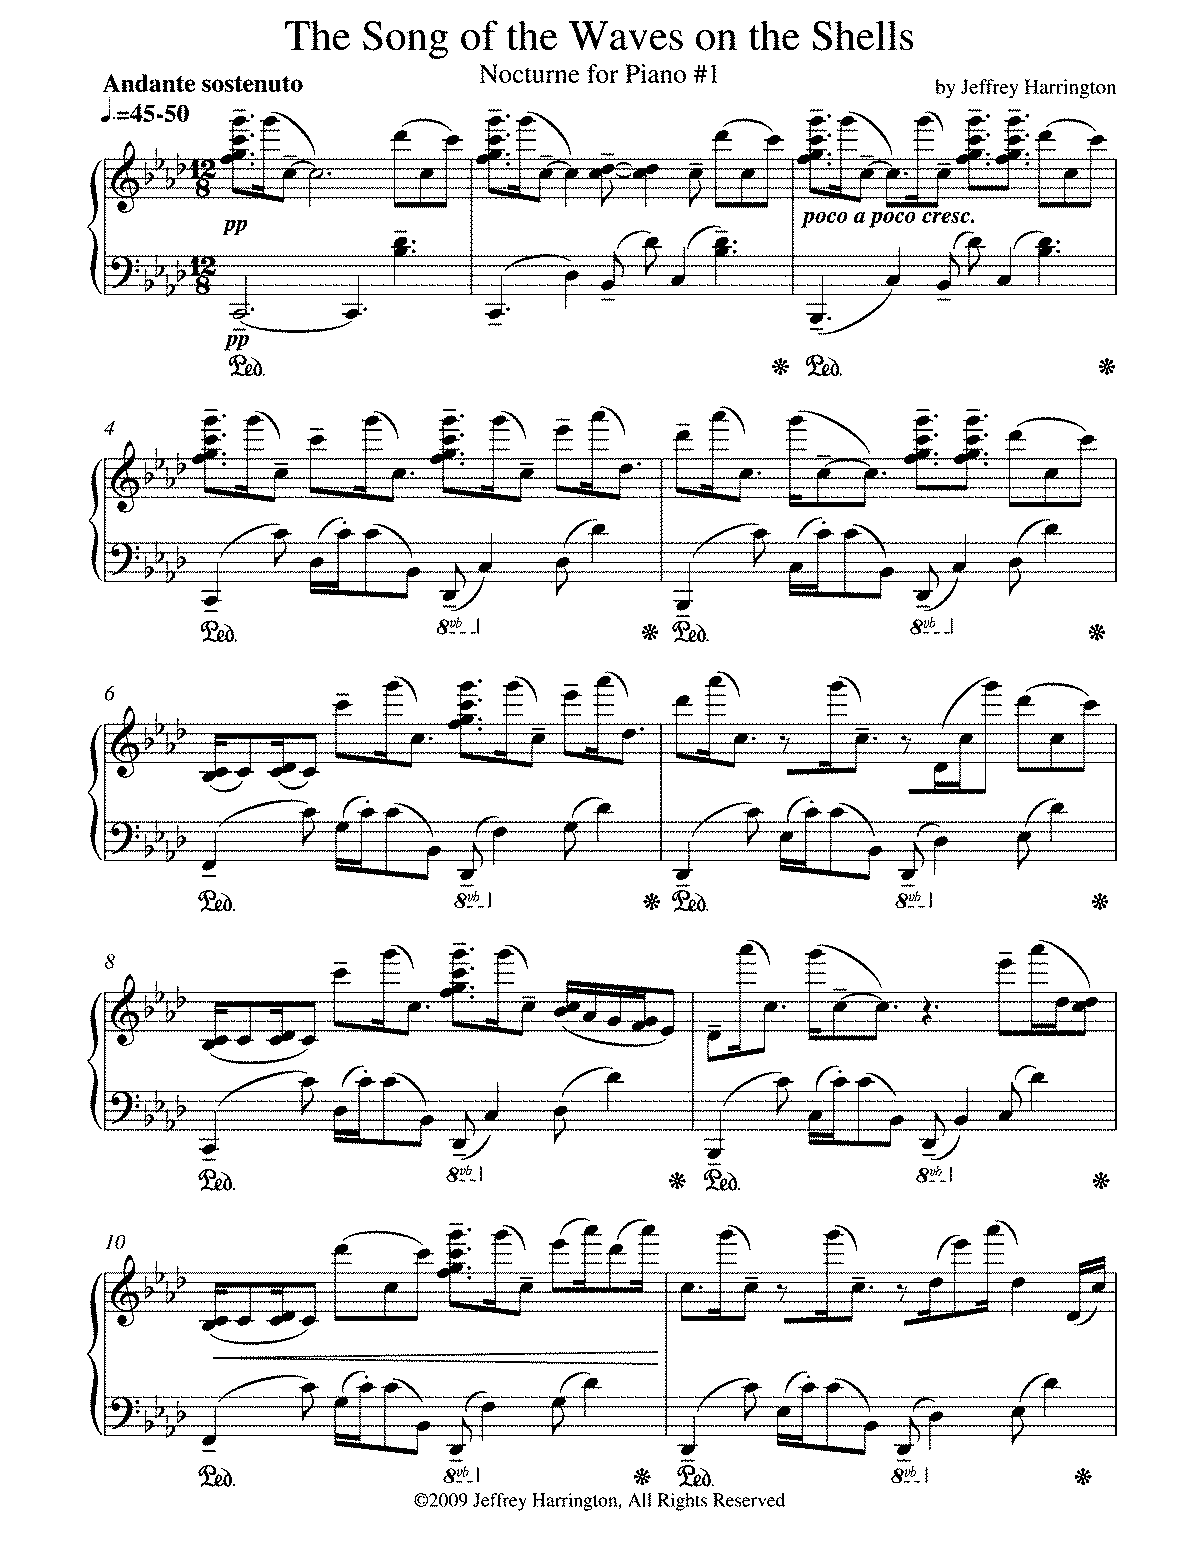 PMLP420023-IMSLP109145-PMLP221834-nocturne for piano 1.pdf